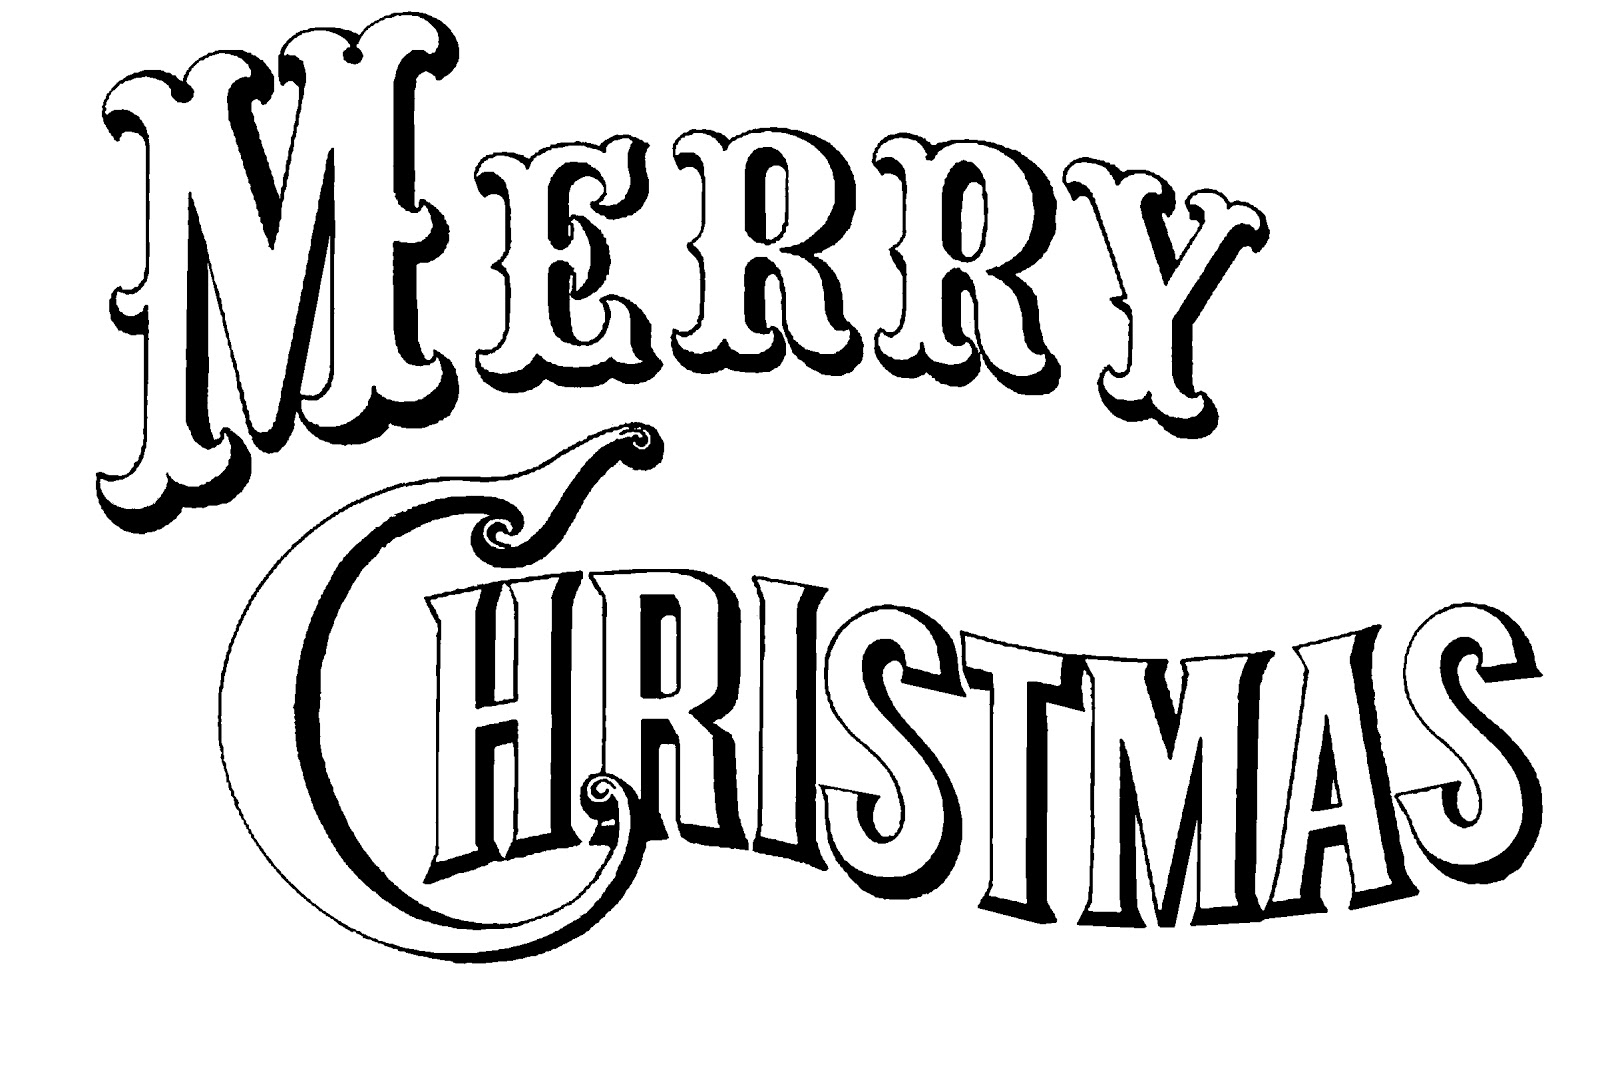 vintage%20merry%20christmas%20clipart